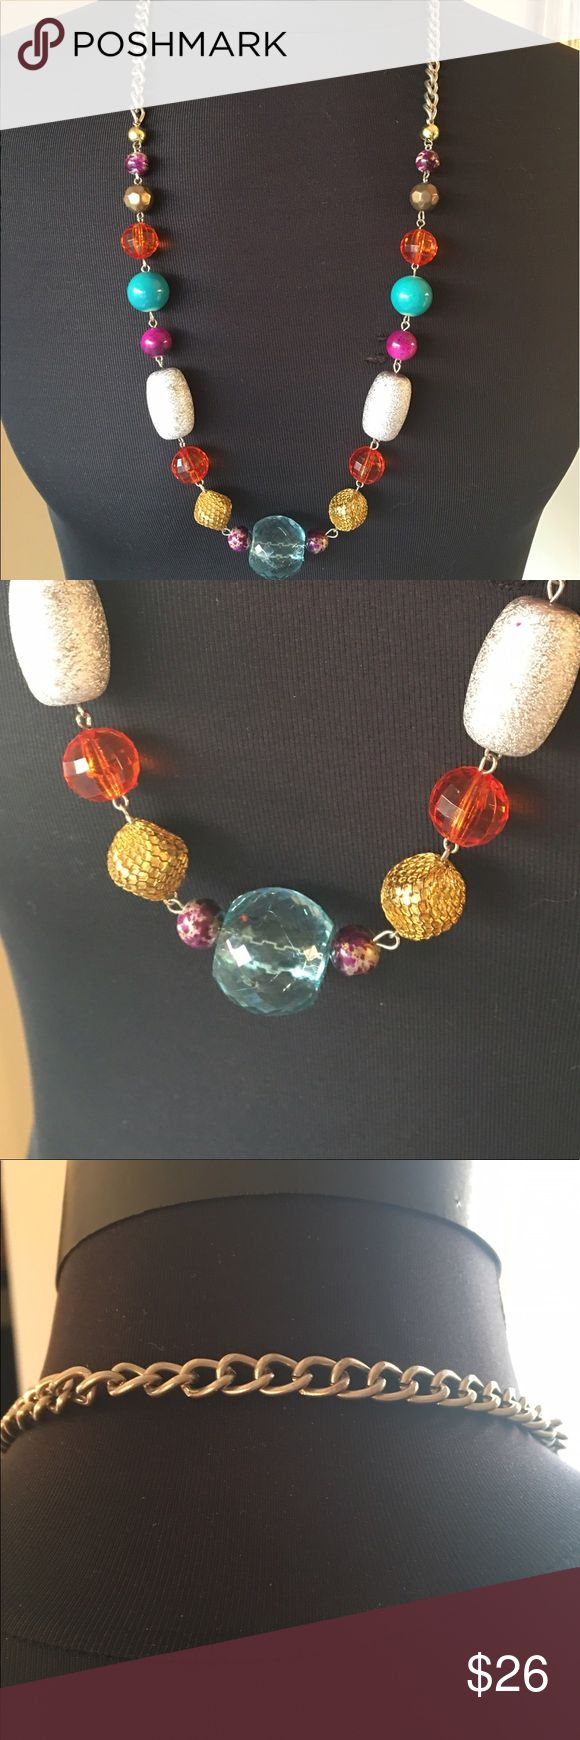 ⭐️NEIMAN MARCUS VINTAGE 1970'S NECKLACE 💯AUTH VINTAGE 1970'S MULTICOLORED NECKLACE 💯AUTHENTIC. PURCHASED IN THE EARLY 1970's BY MY MOTHER AT NEIMAN MARCUS. THE LENGH IS 30 TOTAL INCHES Neiman Marcus Jewelry Necklaces